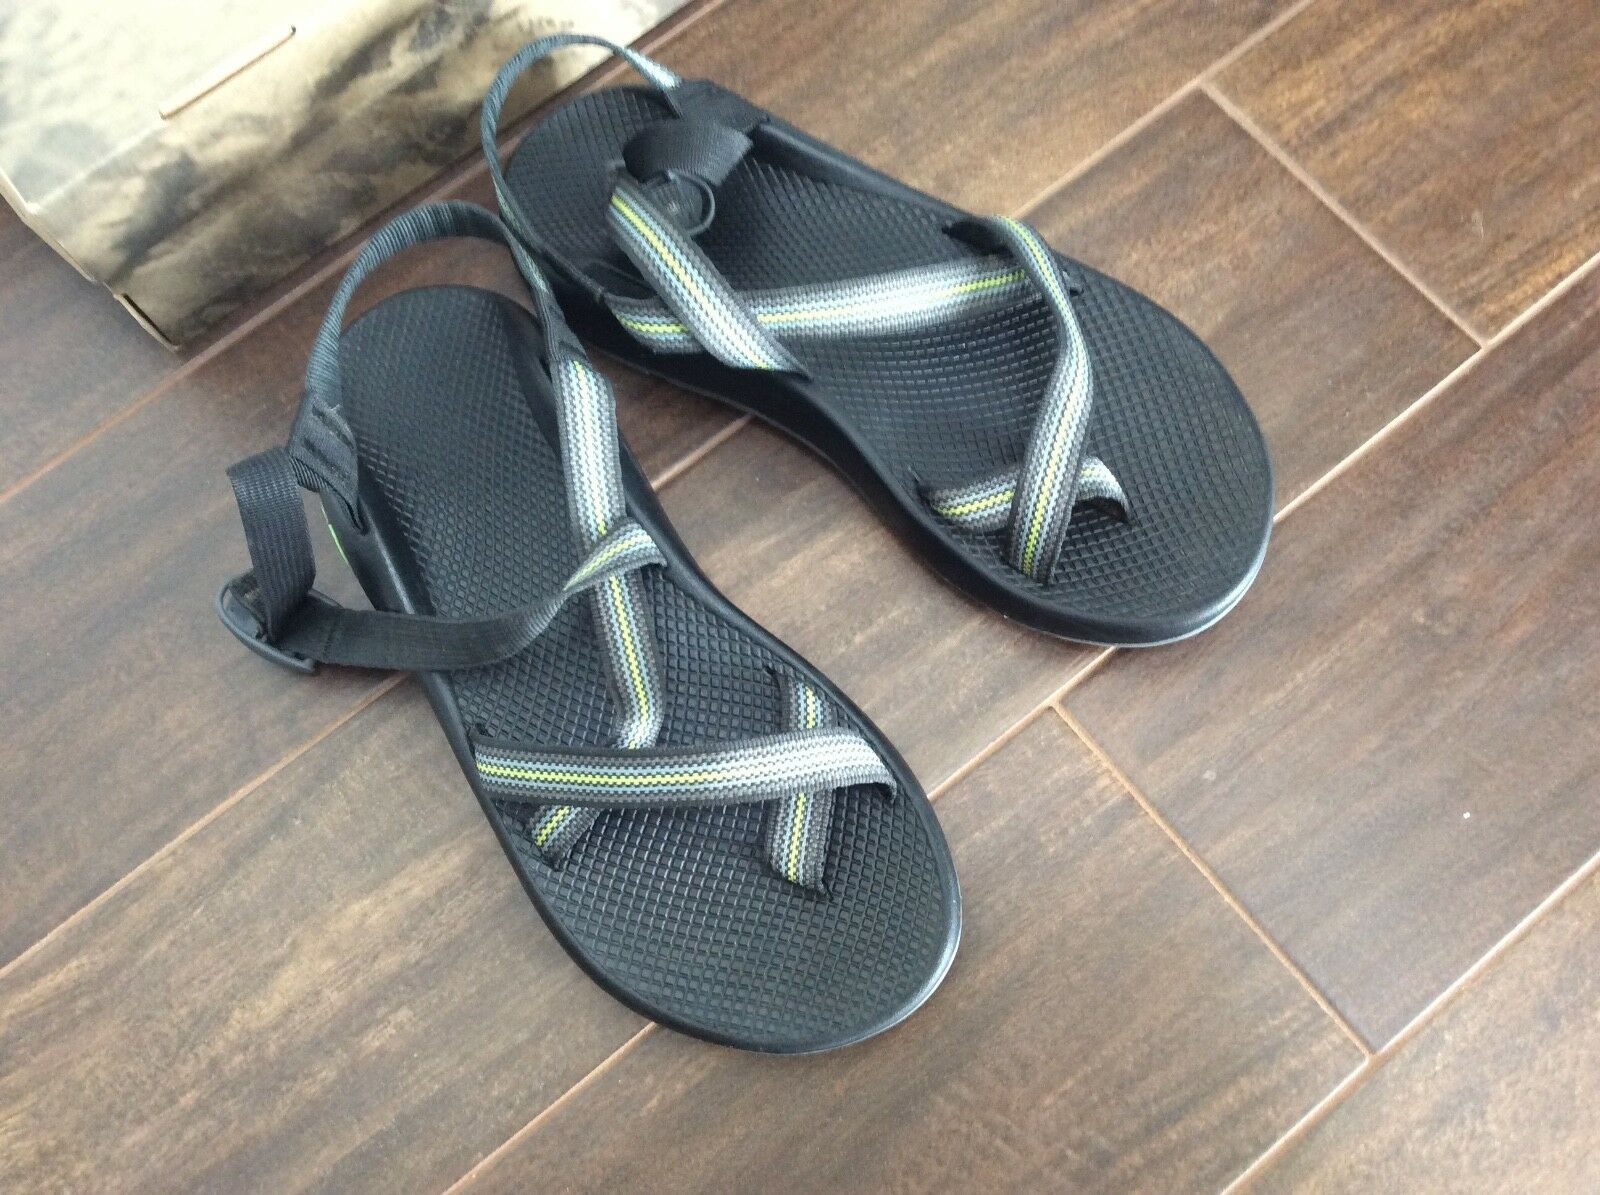 Chaco Chaco Chaco herr Sandals Sz12  kolla in det billigaste